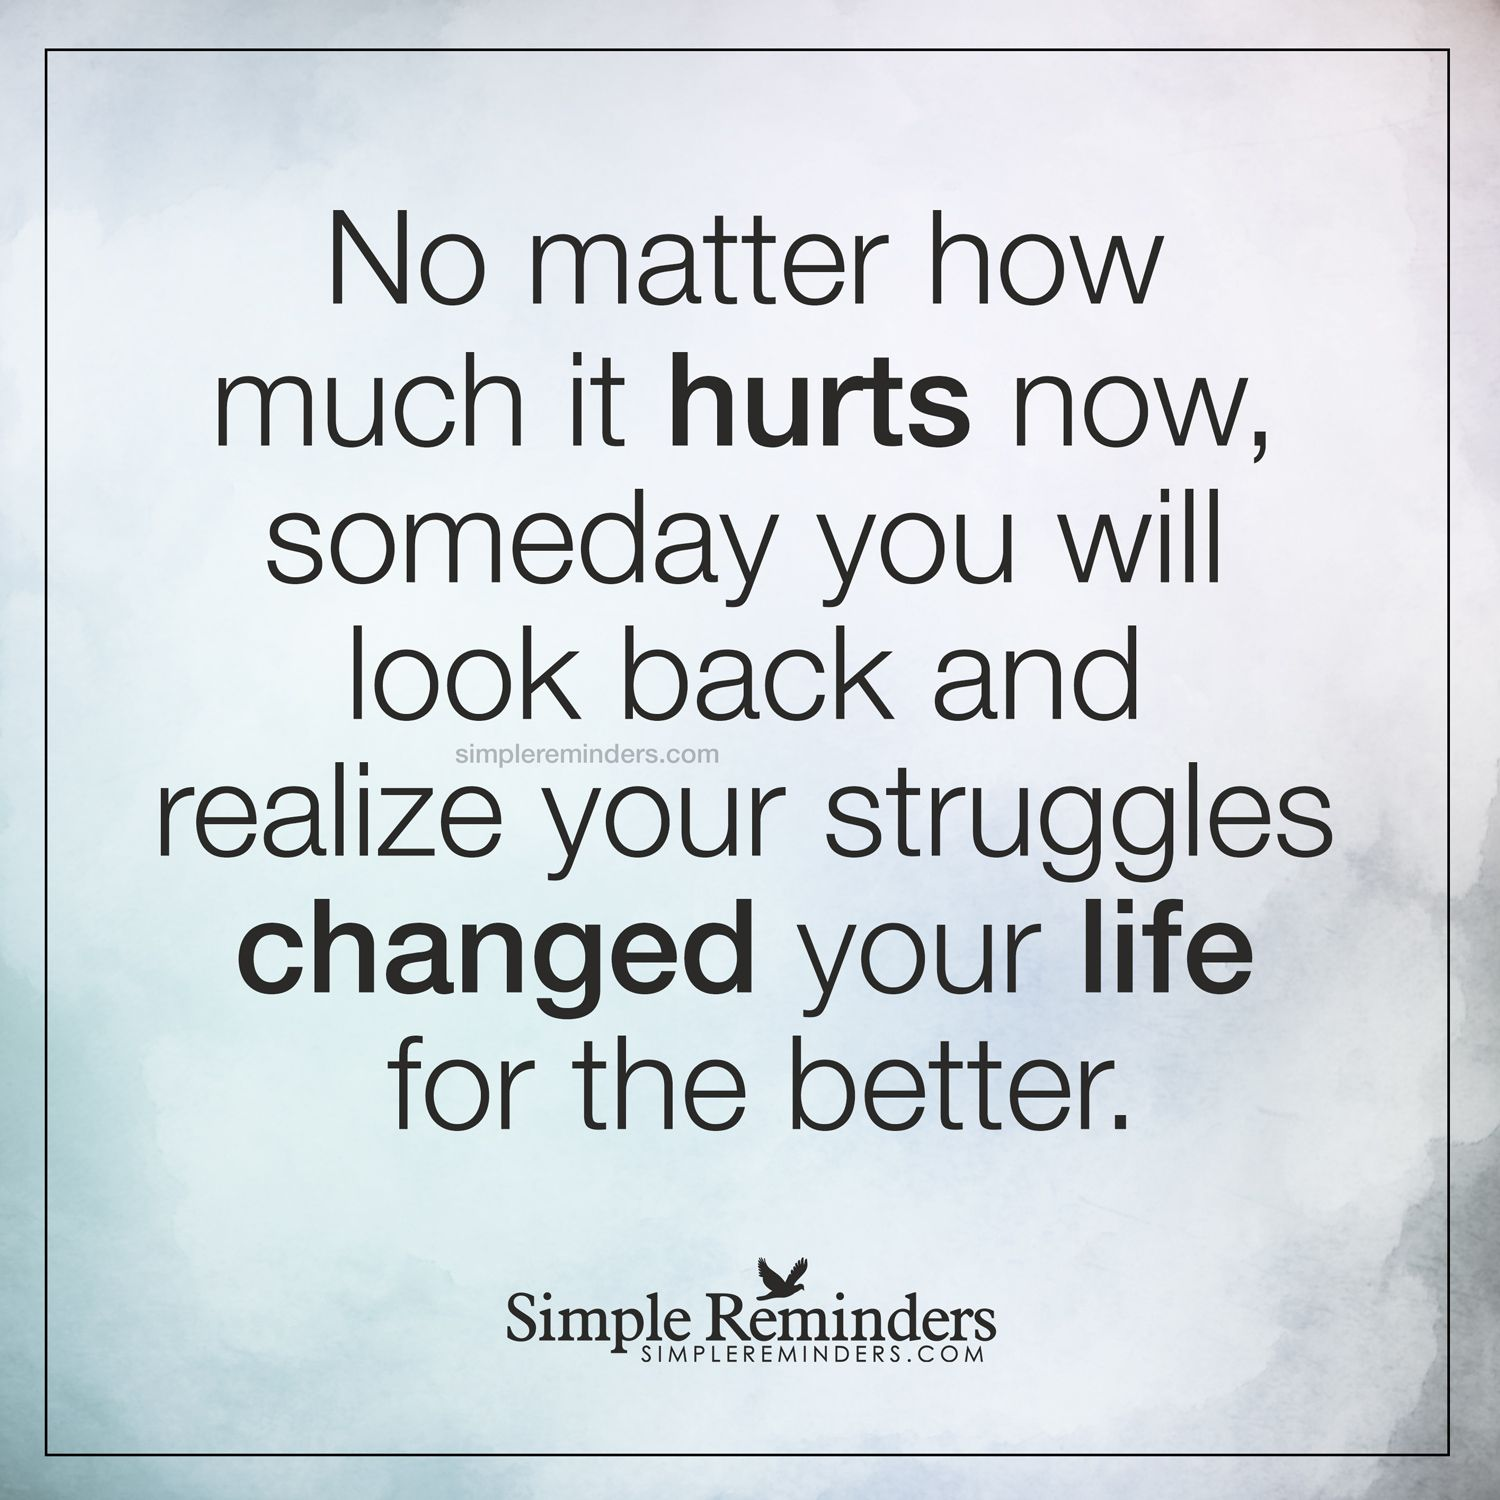 Quotes About Life Struggles Struggles Change Life For The Better No Matter How Much It Hurts